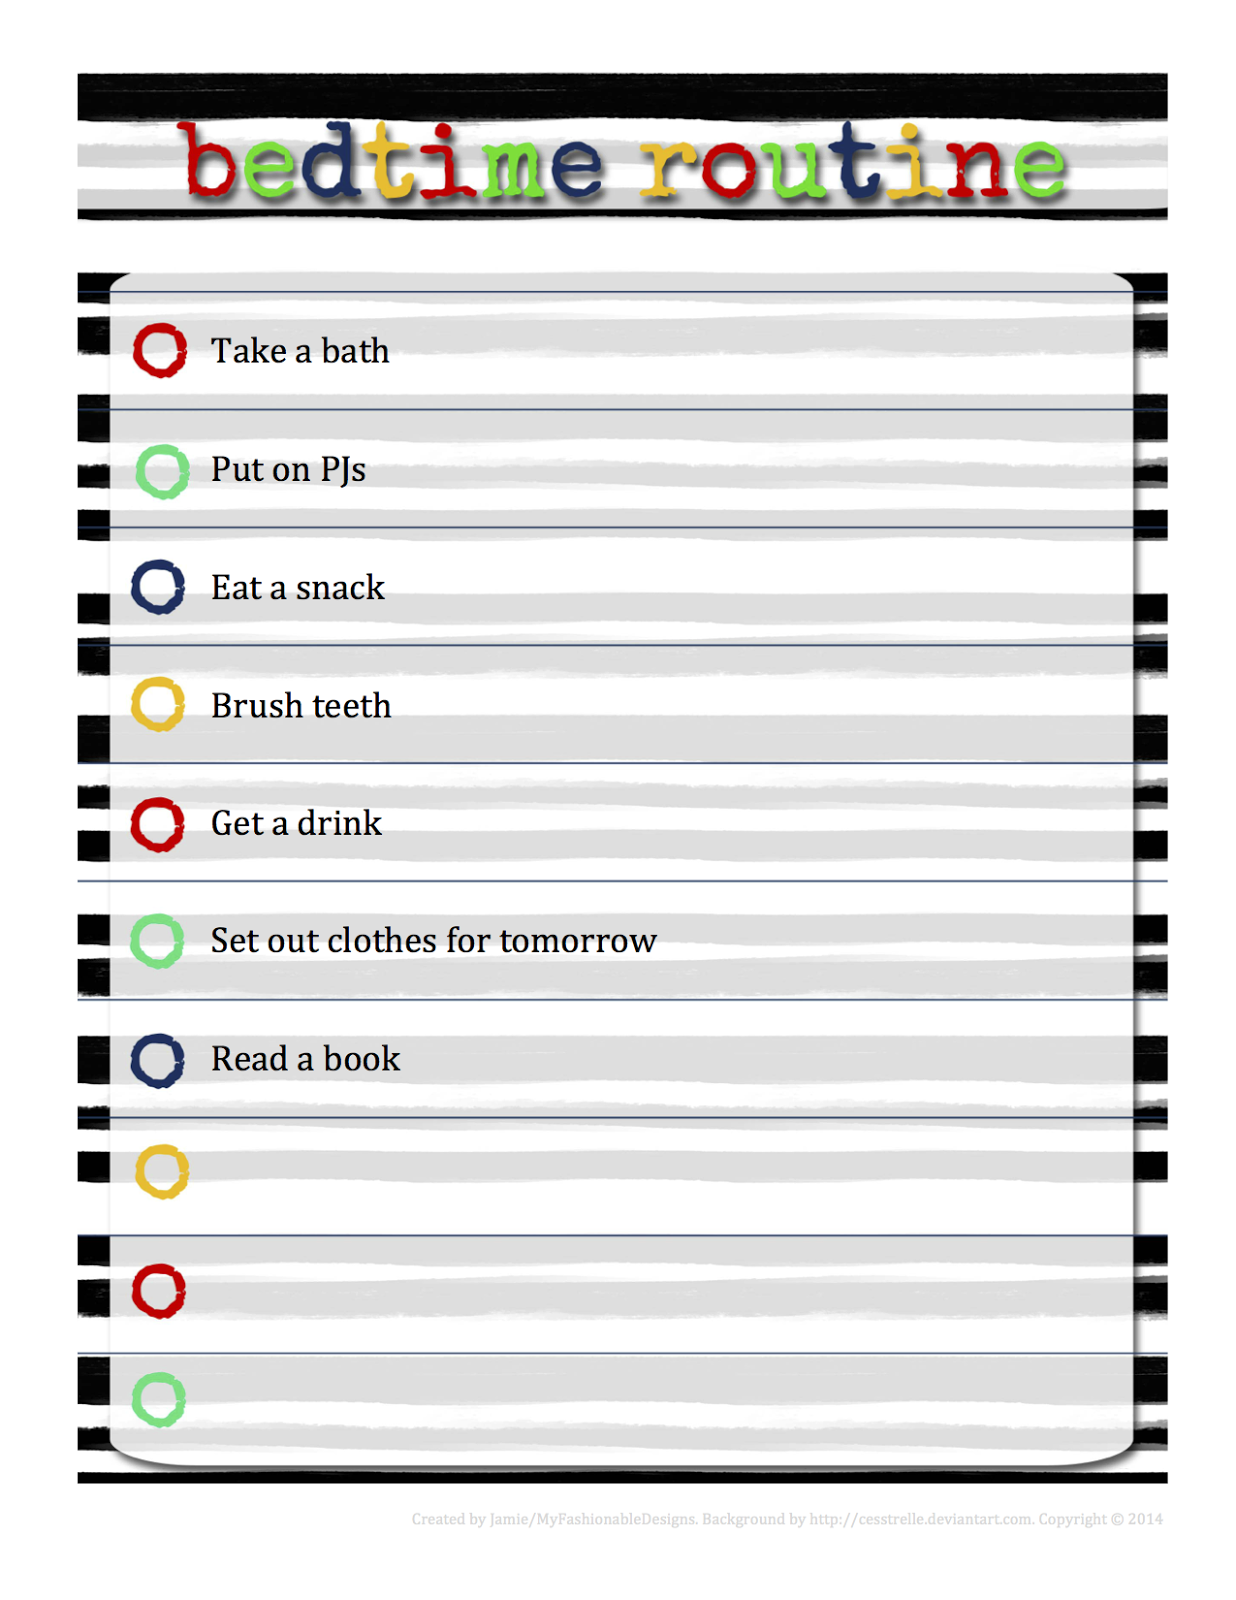 Morning routine chart free download editable in word kids pinterest and also rh